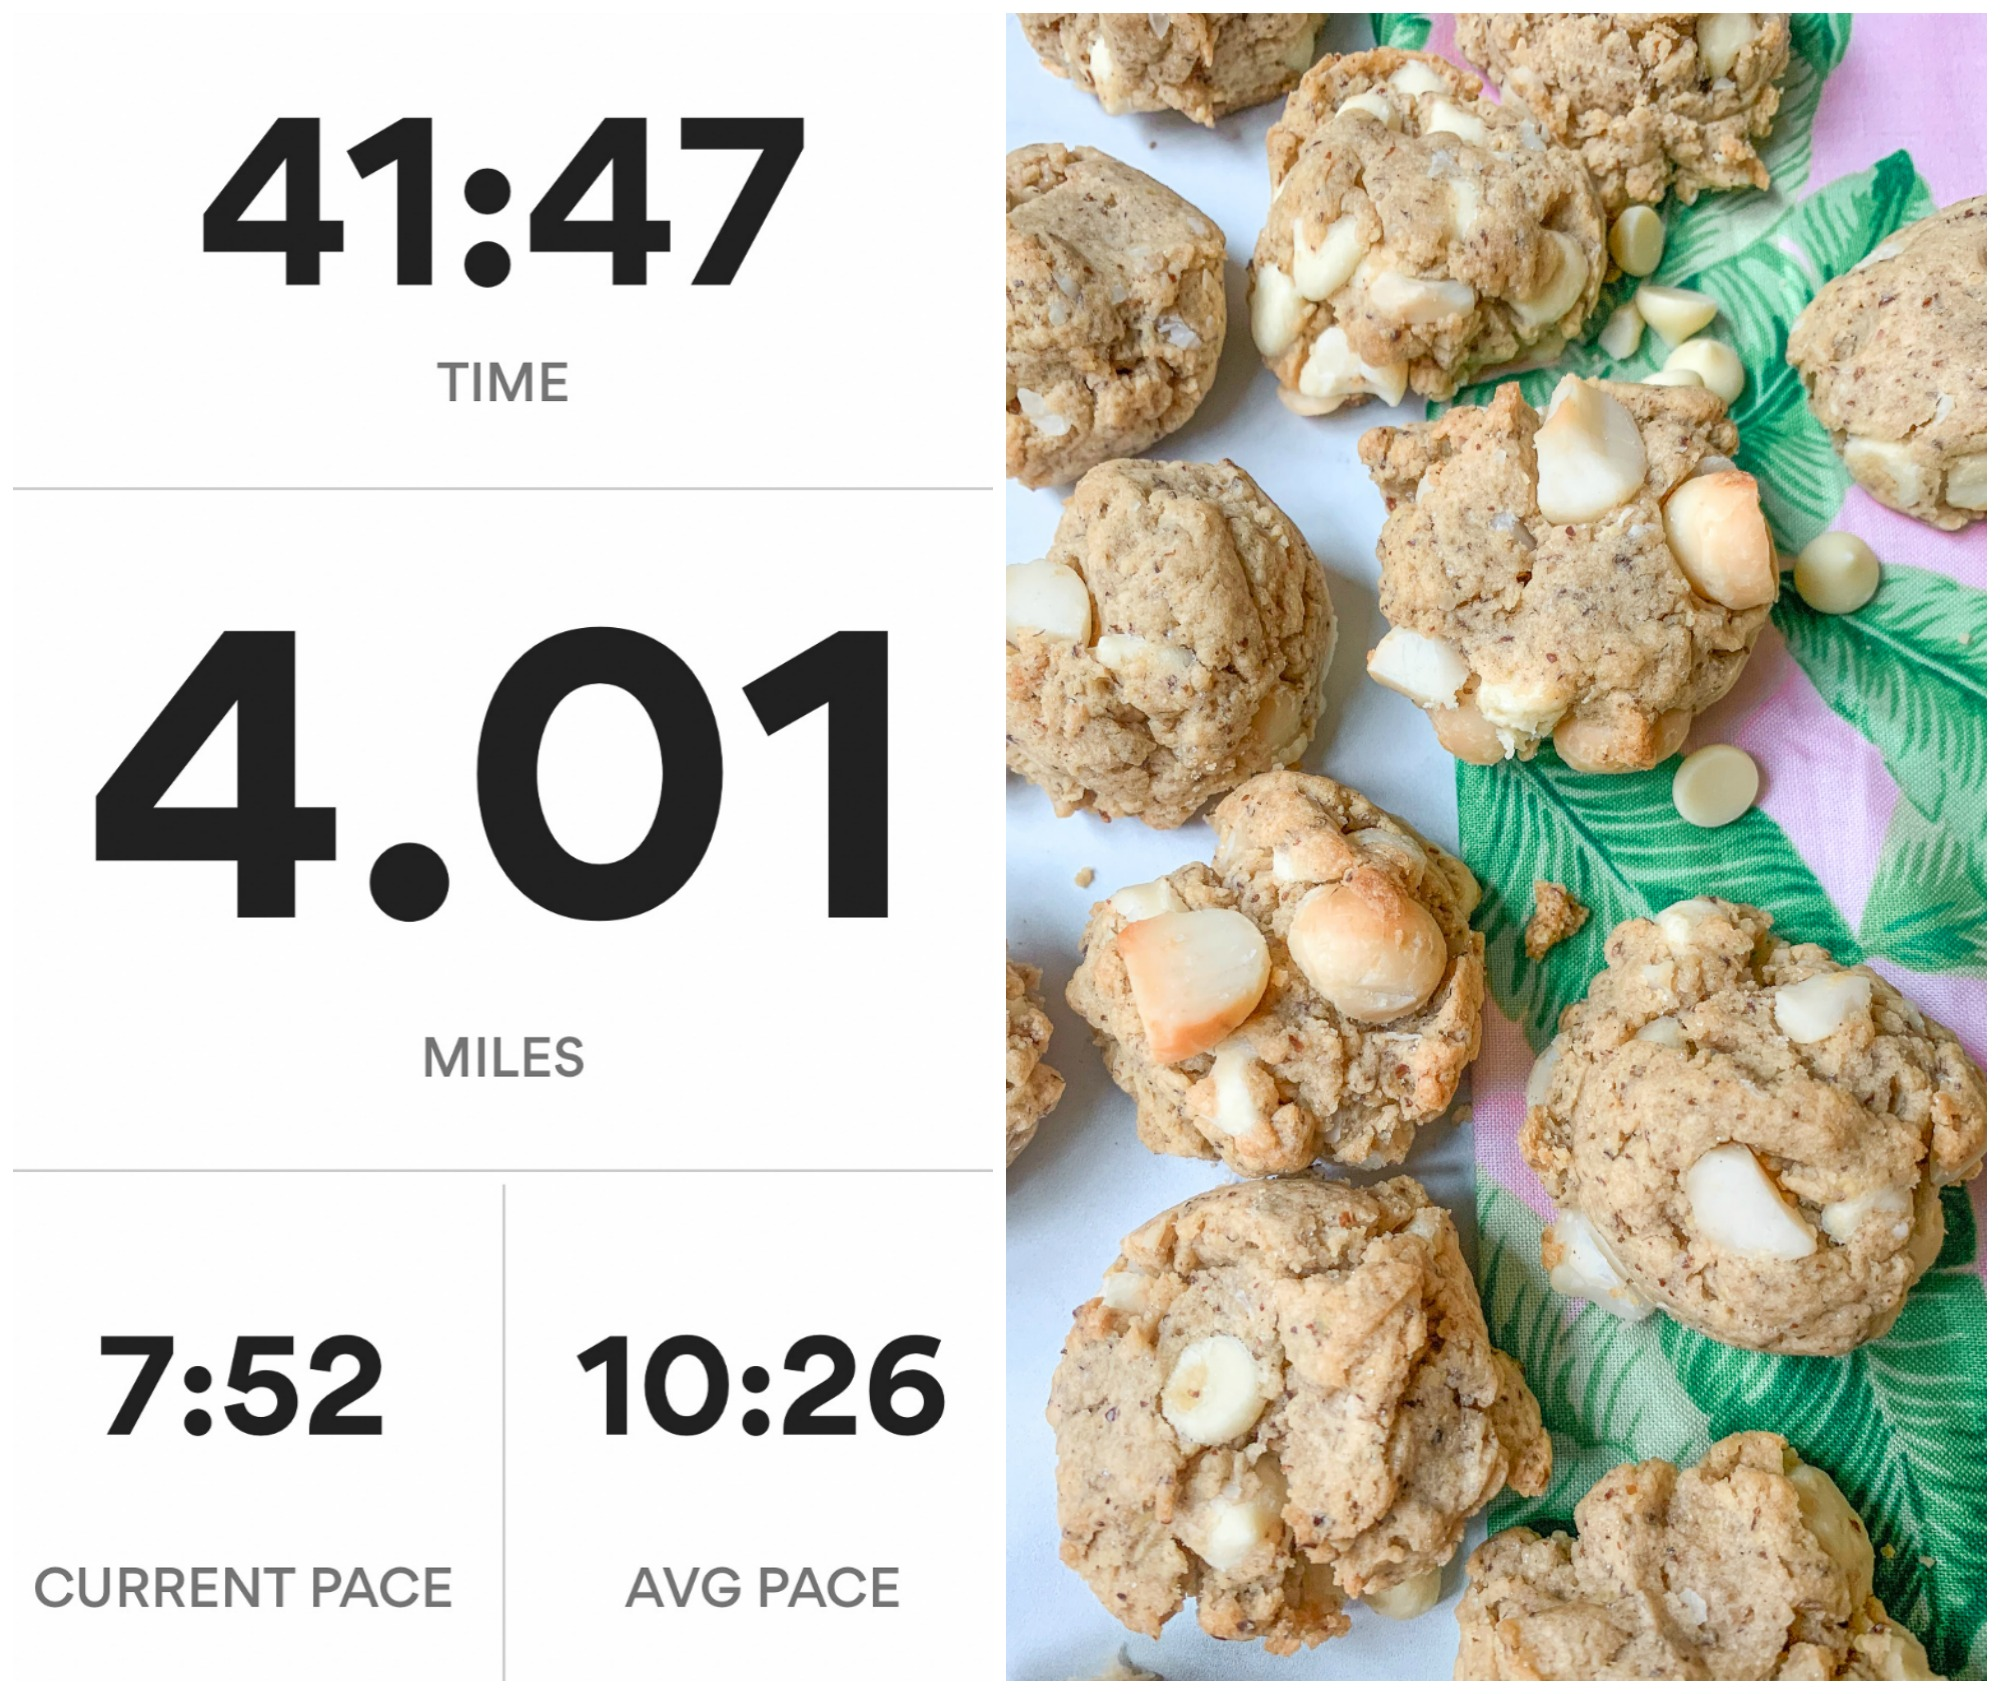 running, healthy, exercise, vegan macadamia nut cookies, summer, run fitness, train